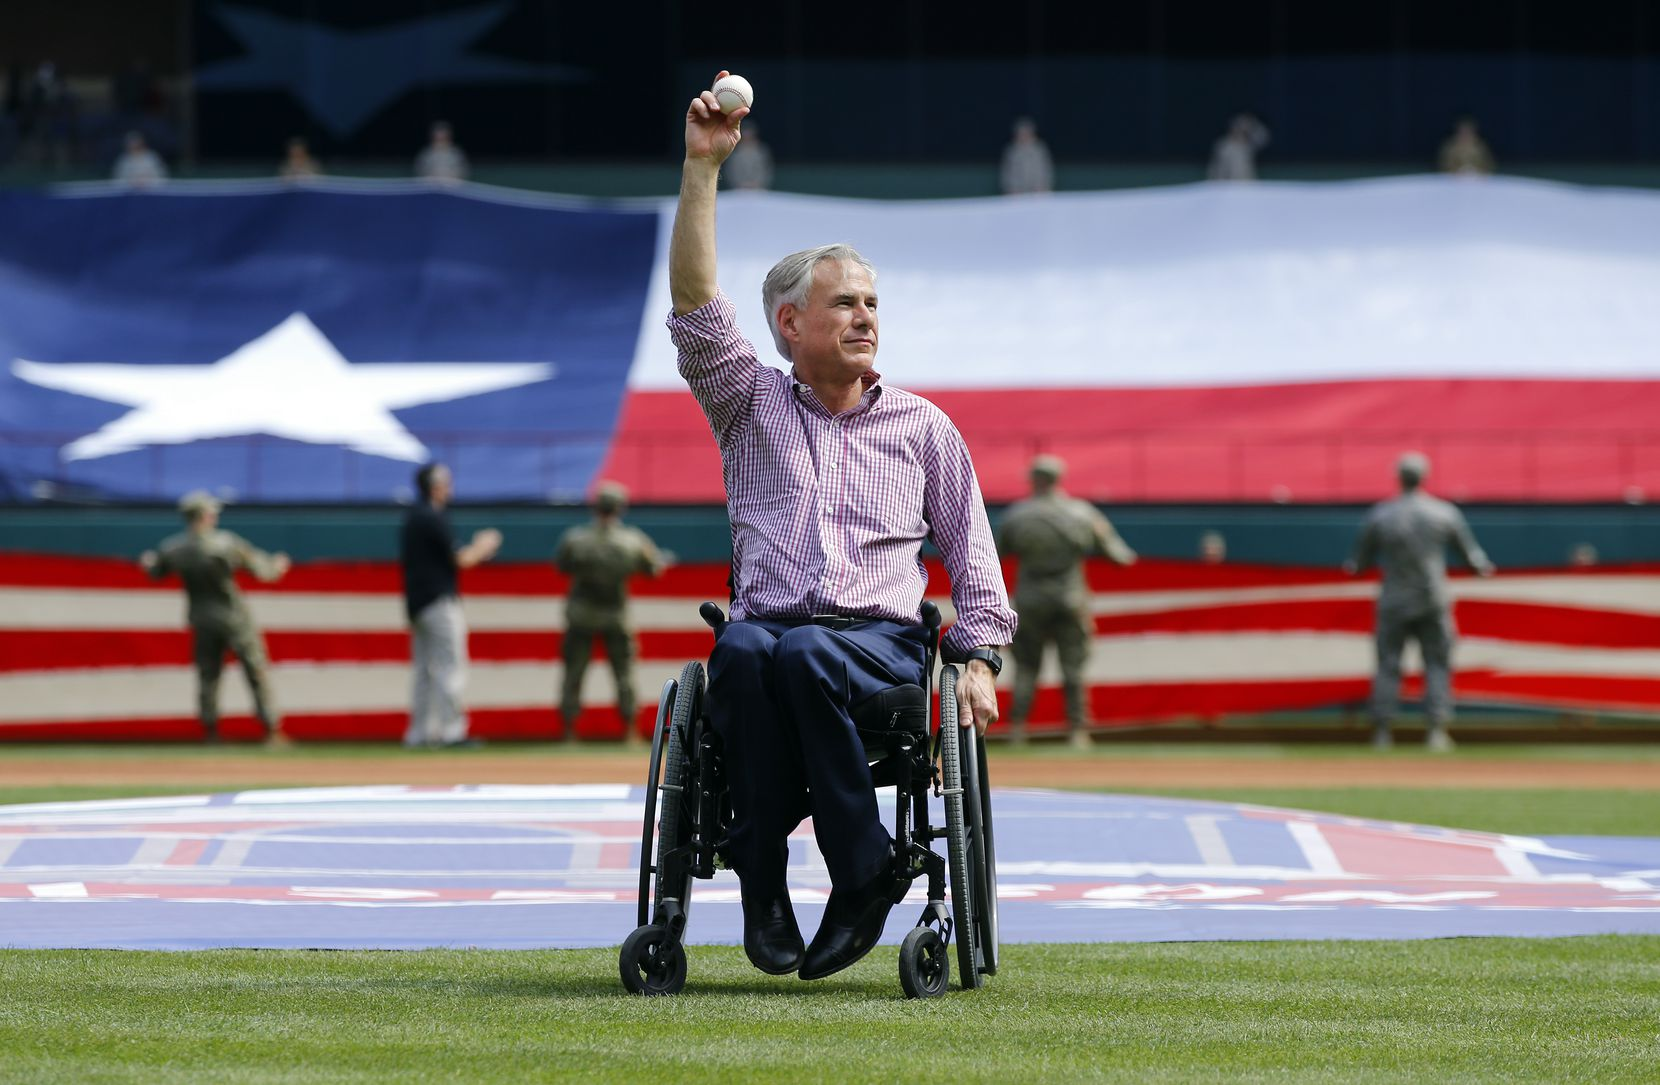 Gov. Greg Abbott, shown waving to the crowd before he threw out the ceremonial first pitch during the Texas Rangers' March 2019 season opener, will videotape a first pitch. The video will be shown at Friday evening's Rangers opener at the club's new Globe Life Park in Arlington.